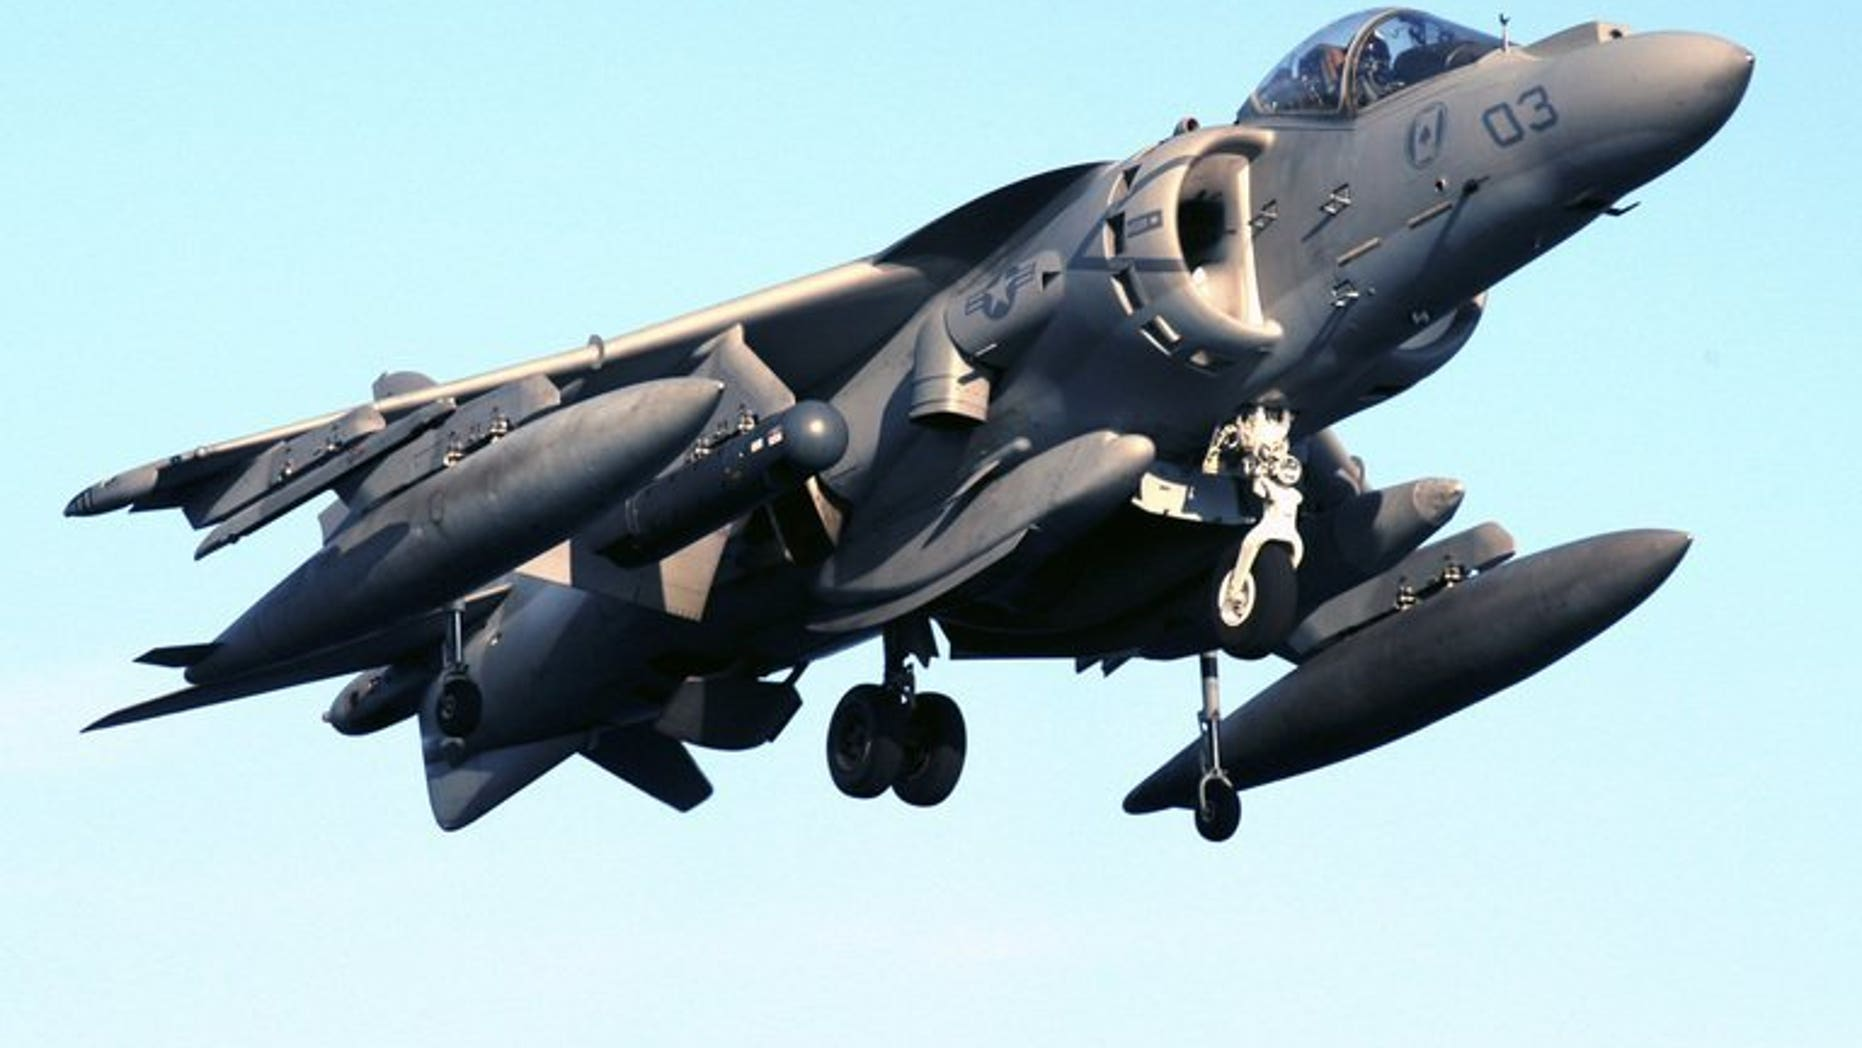 """This file photo, released by US Navy, shows an AV-8B Harrier jet preparing to land on the flight deck of an amphibious assault ship. Similar jets dropped four unarmed bombs on Australia's Great Barrier Reef on July 16, 2013, in an """"emergency jettison"""" during a training exercise, officials said, ruling out any risk to the public or environment."""